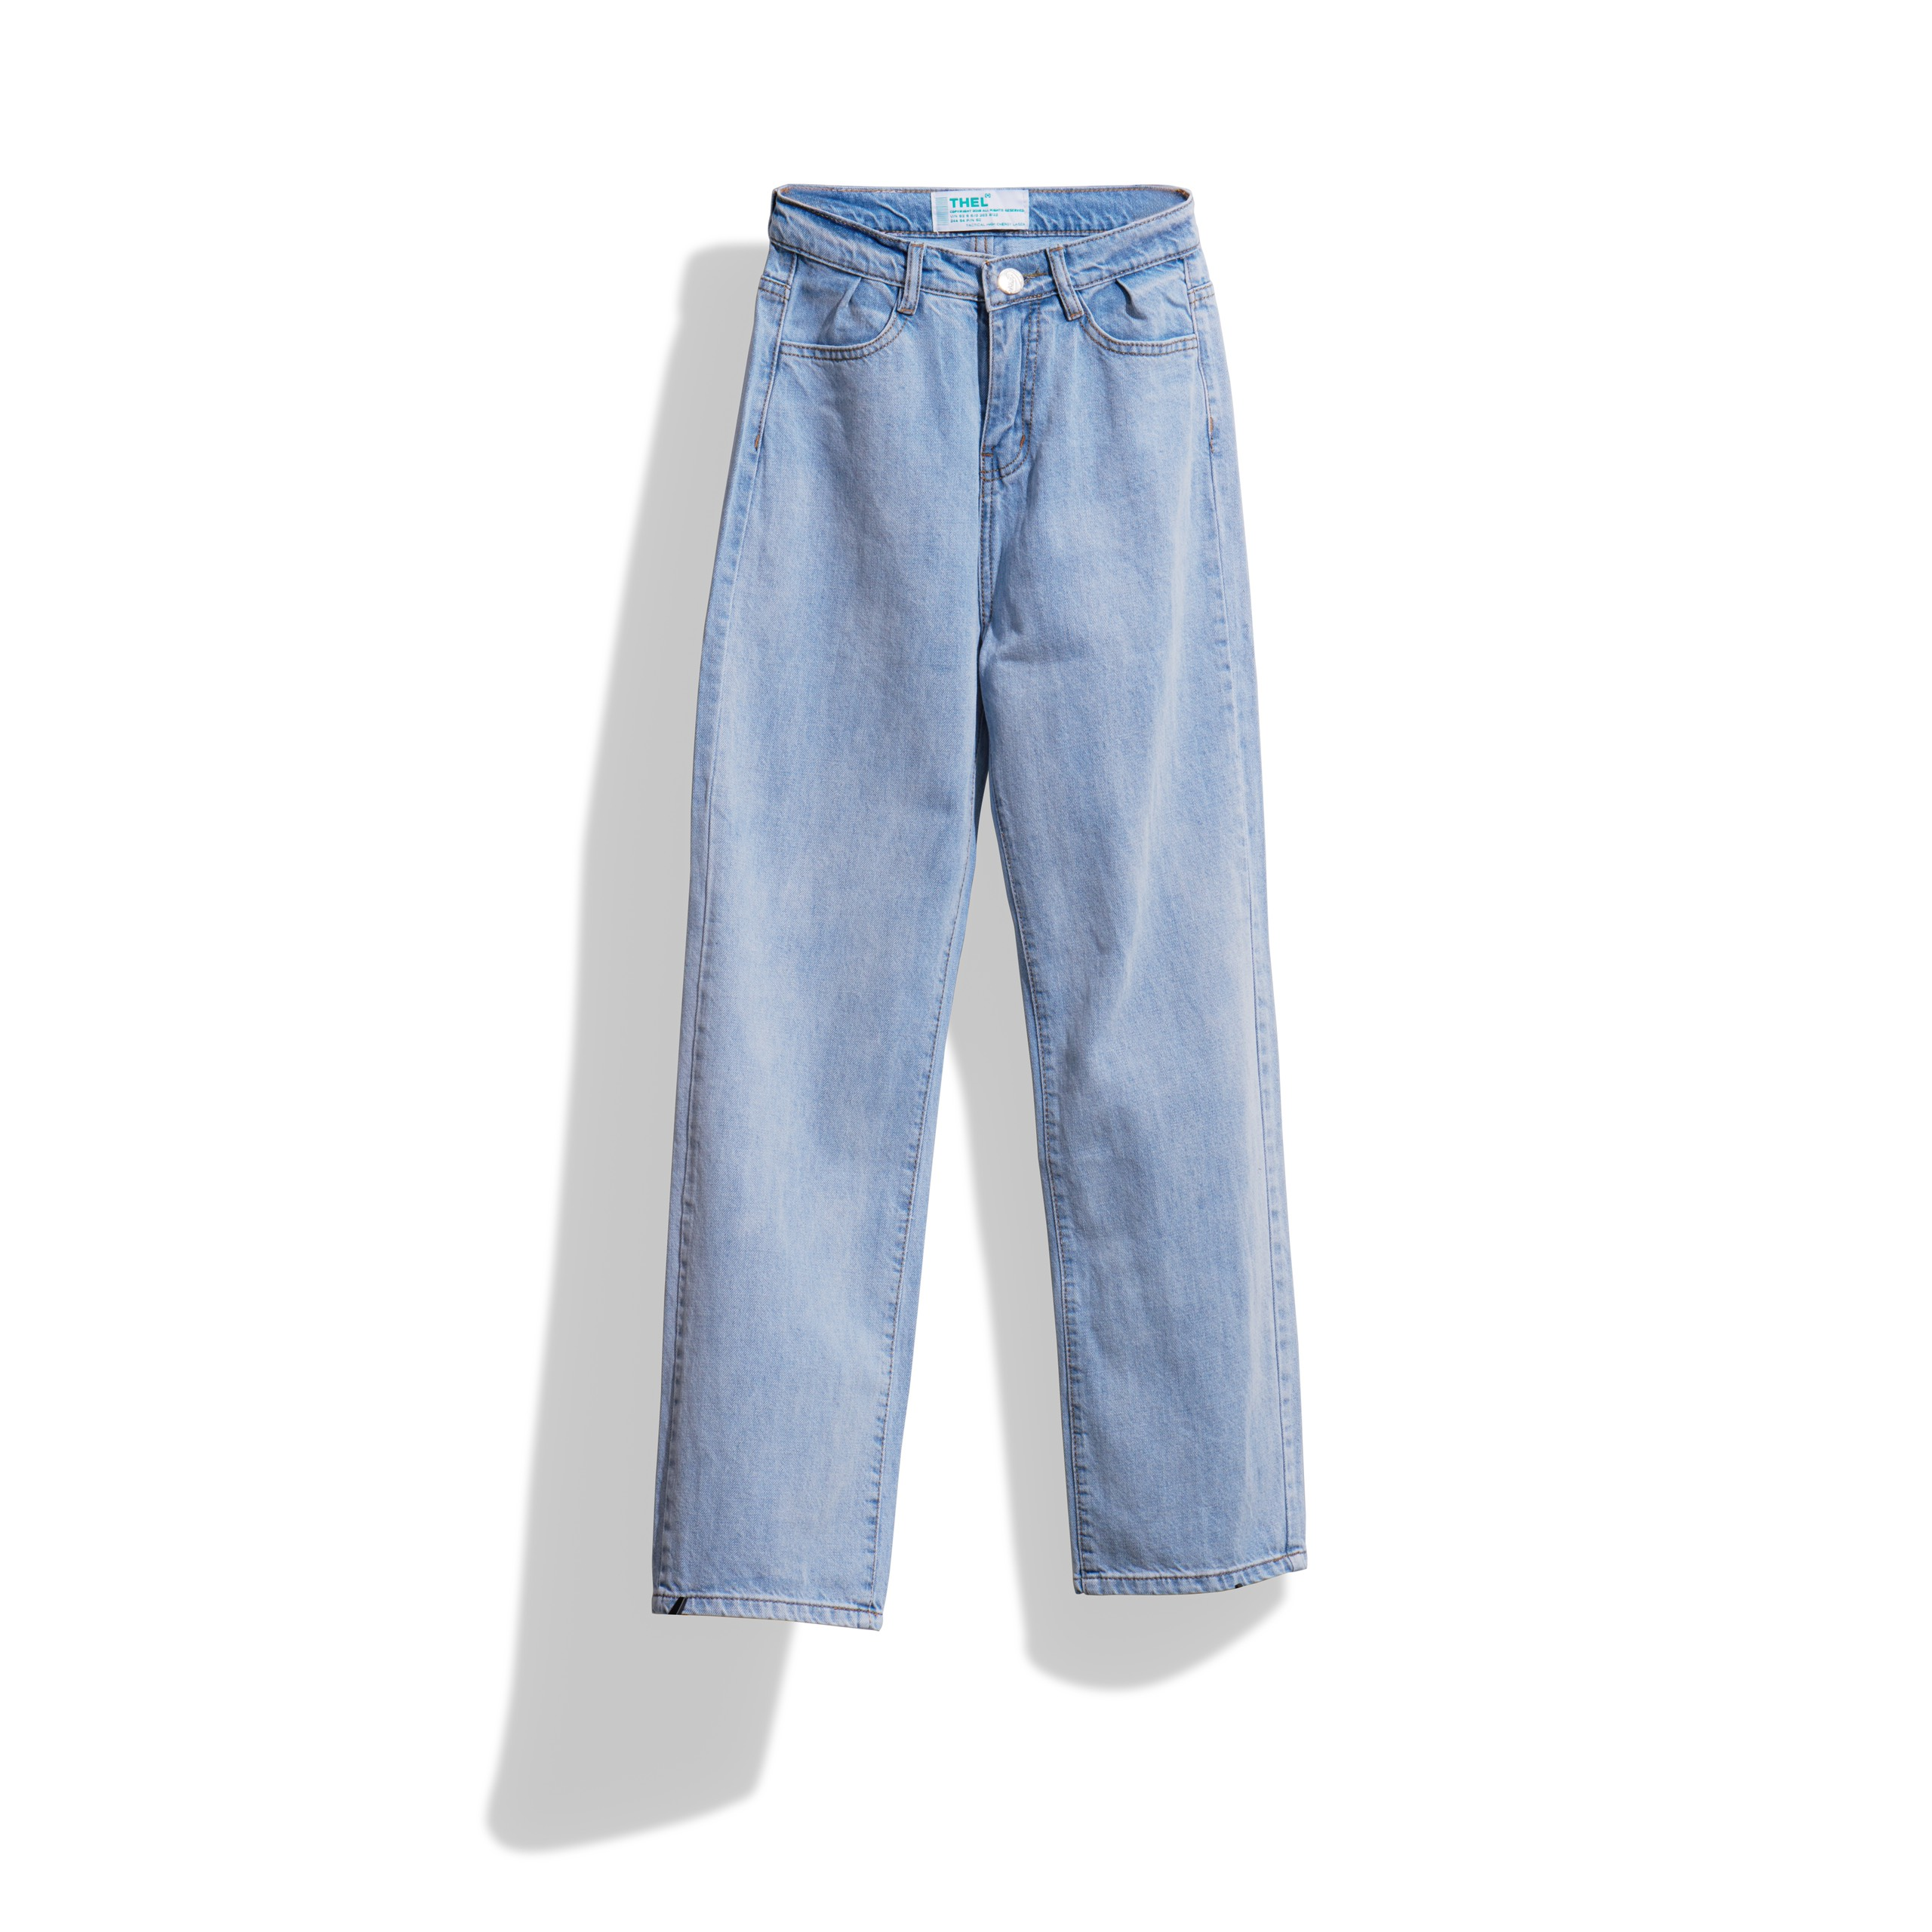 SIMPLY JEANS